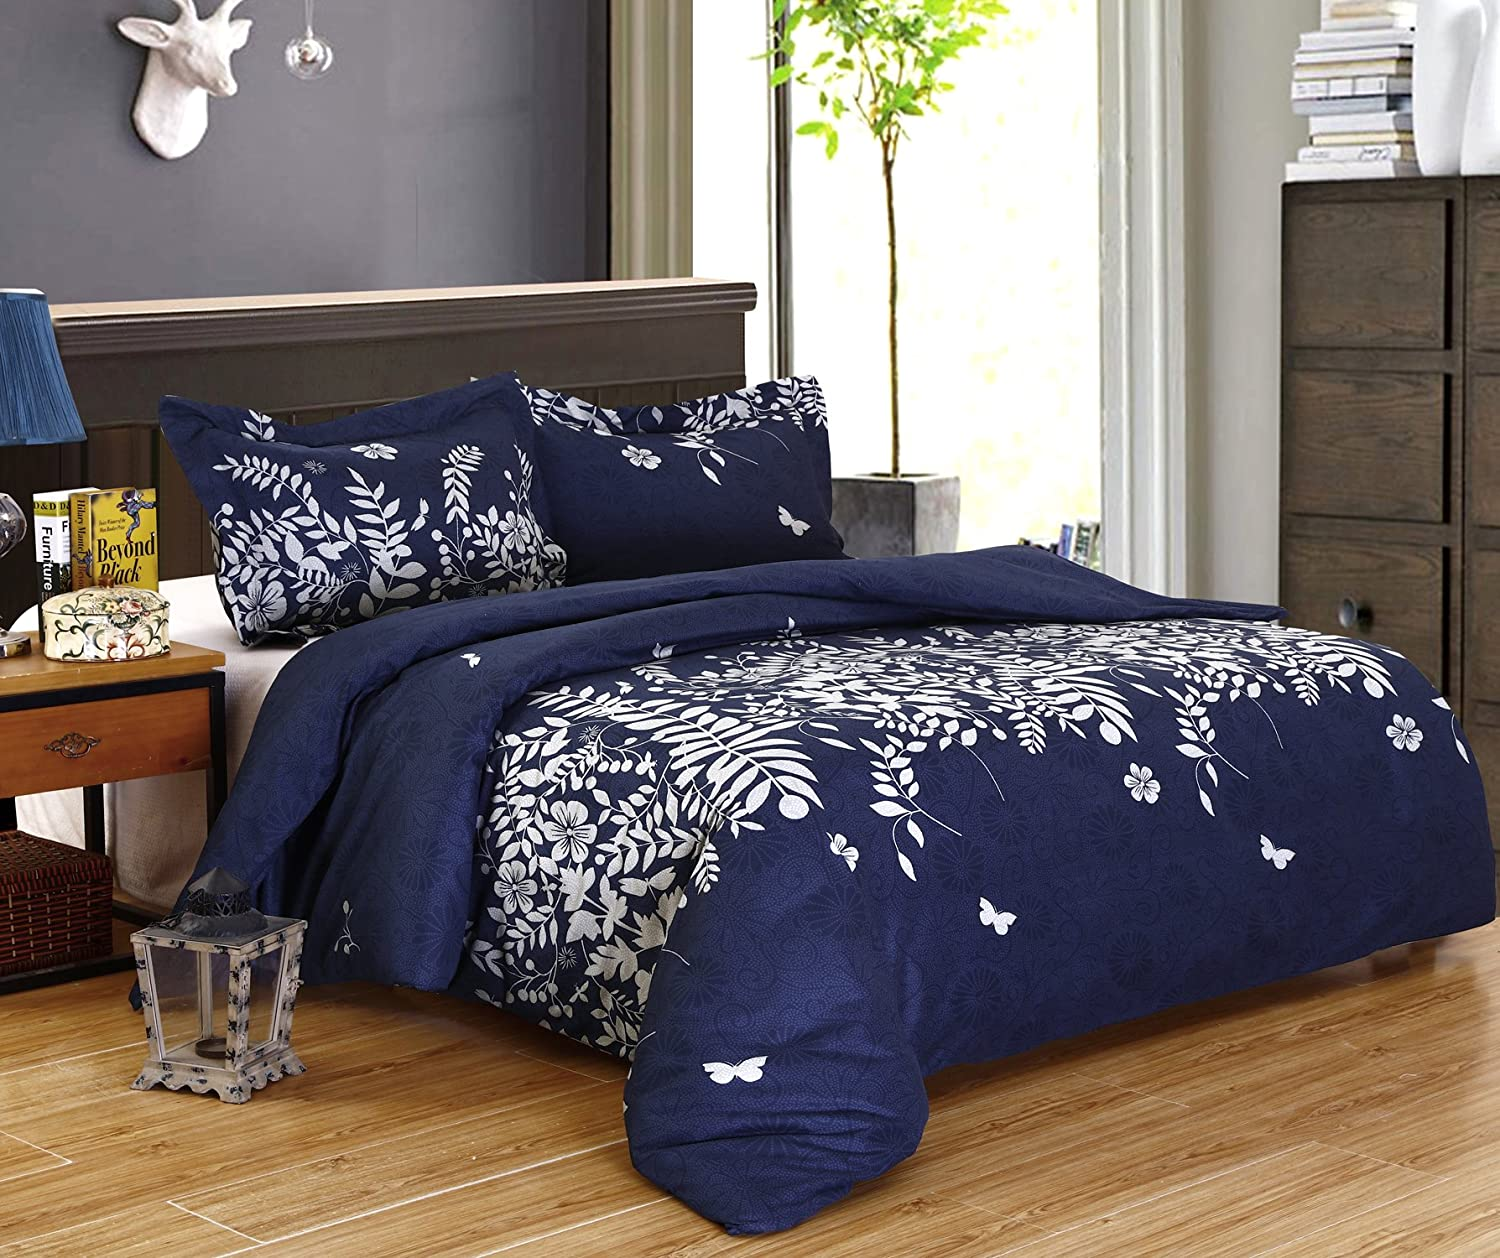 duvet cover silk navy a covers